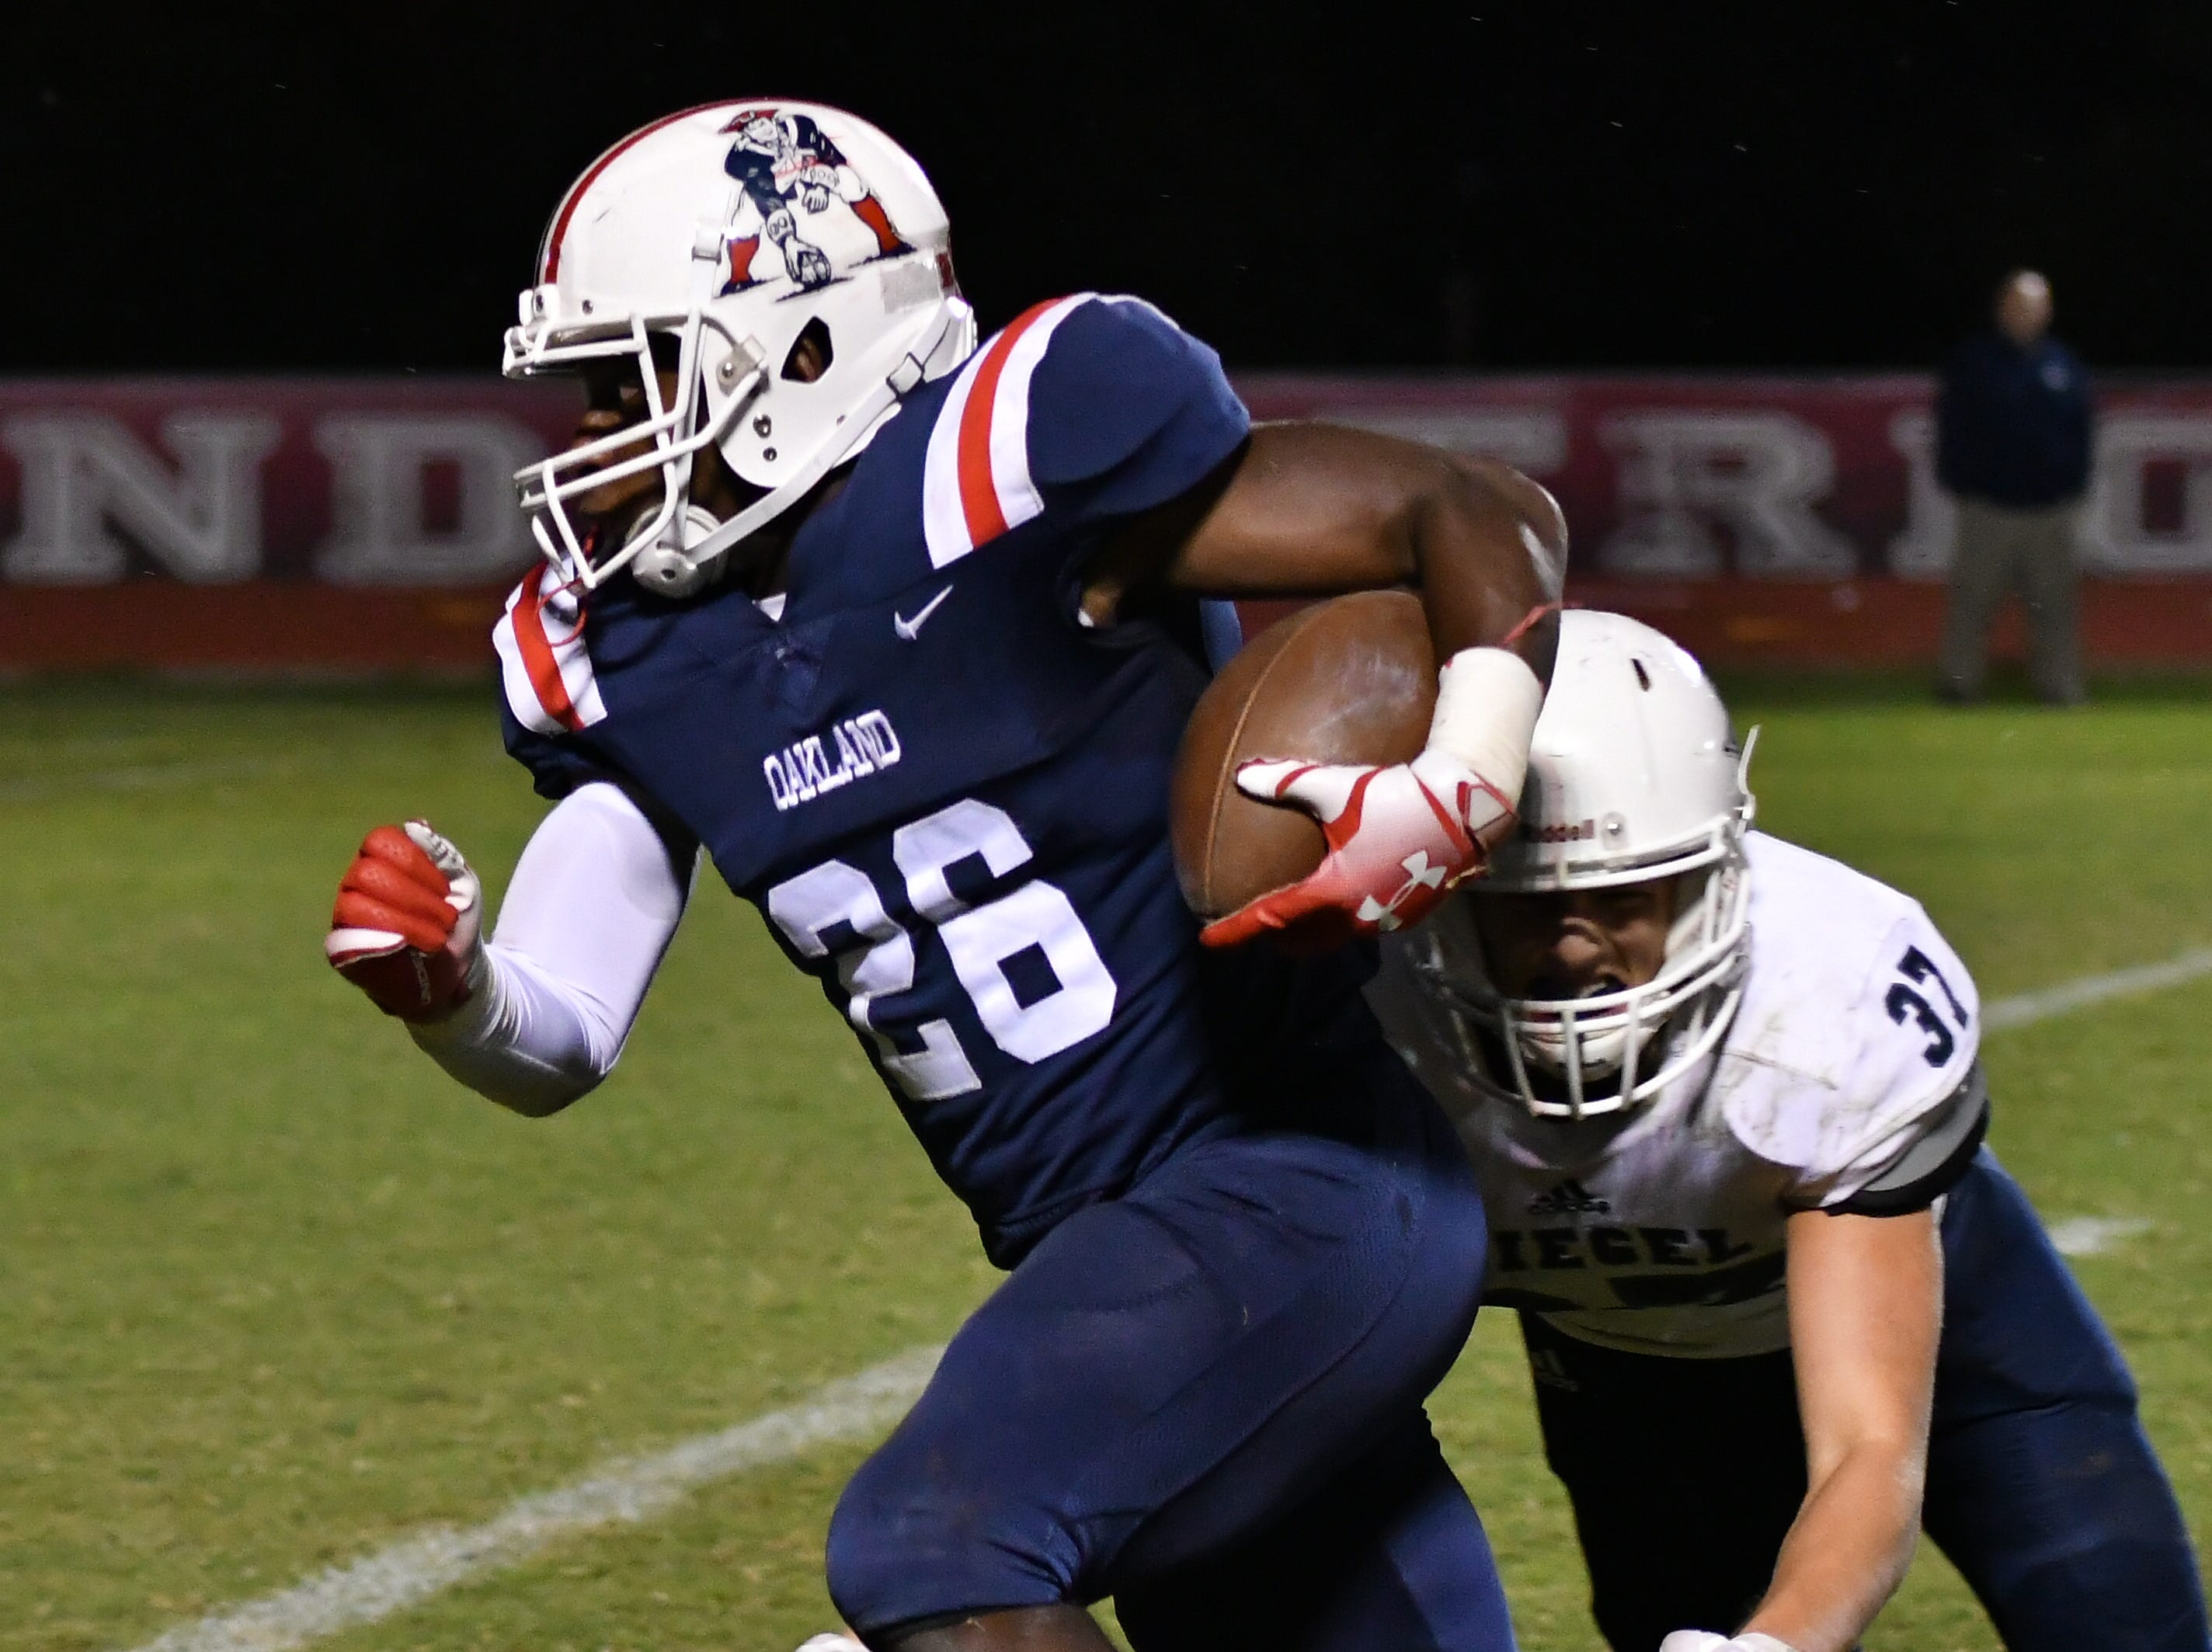 Oakland's Xavier Myers heads downfield as Siegel's Patrick Moss tries for the tackle.